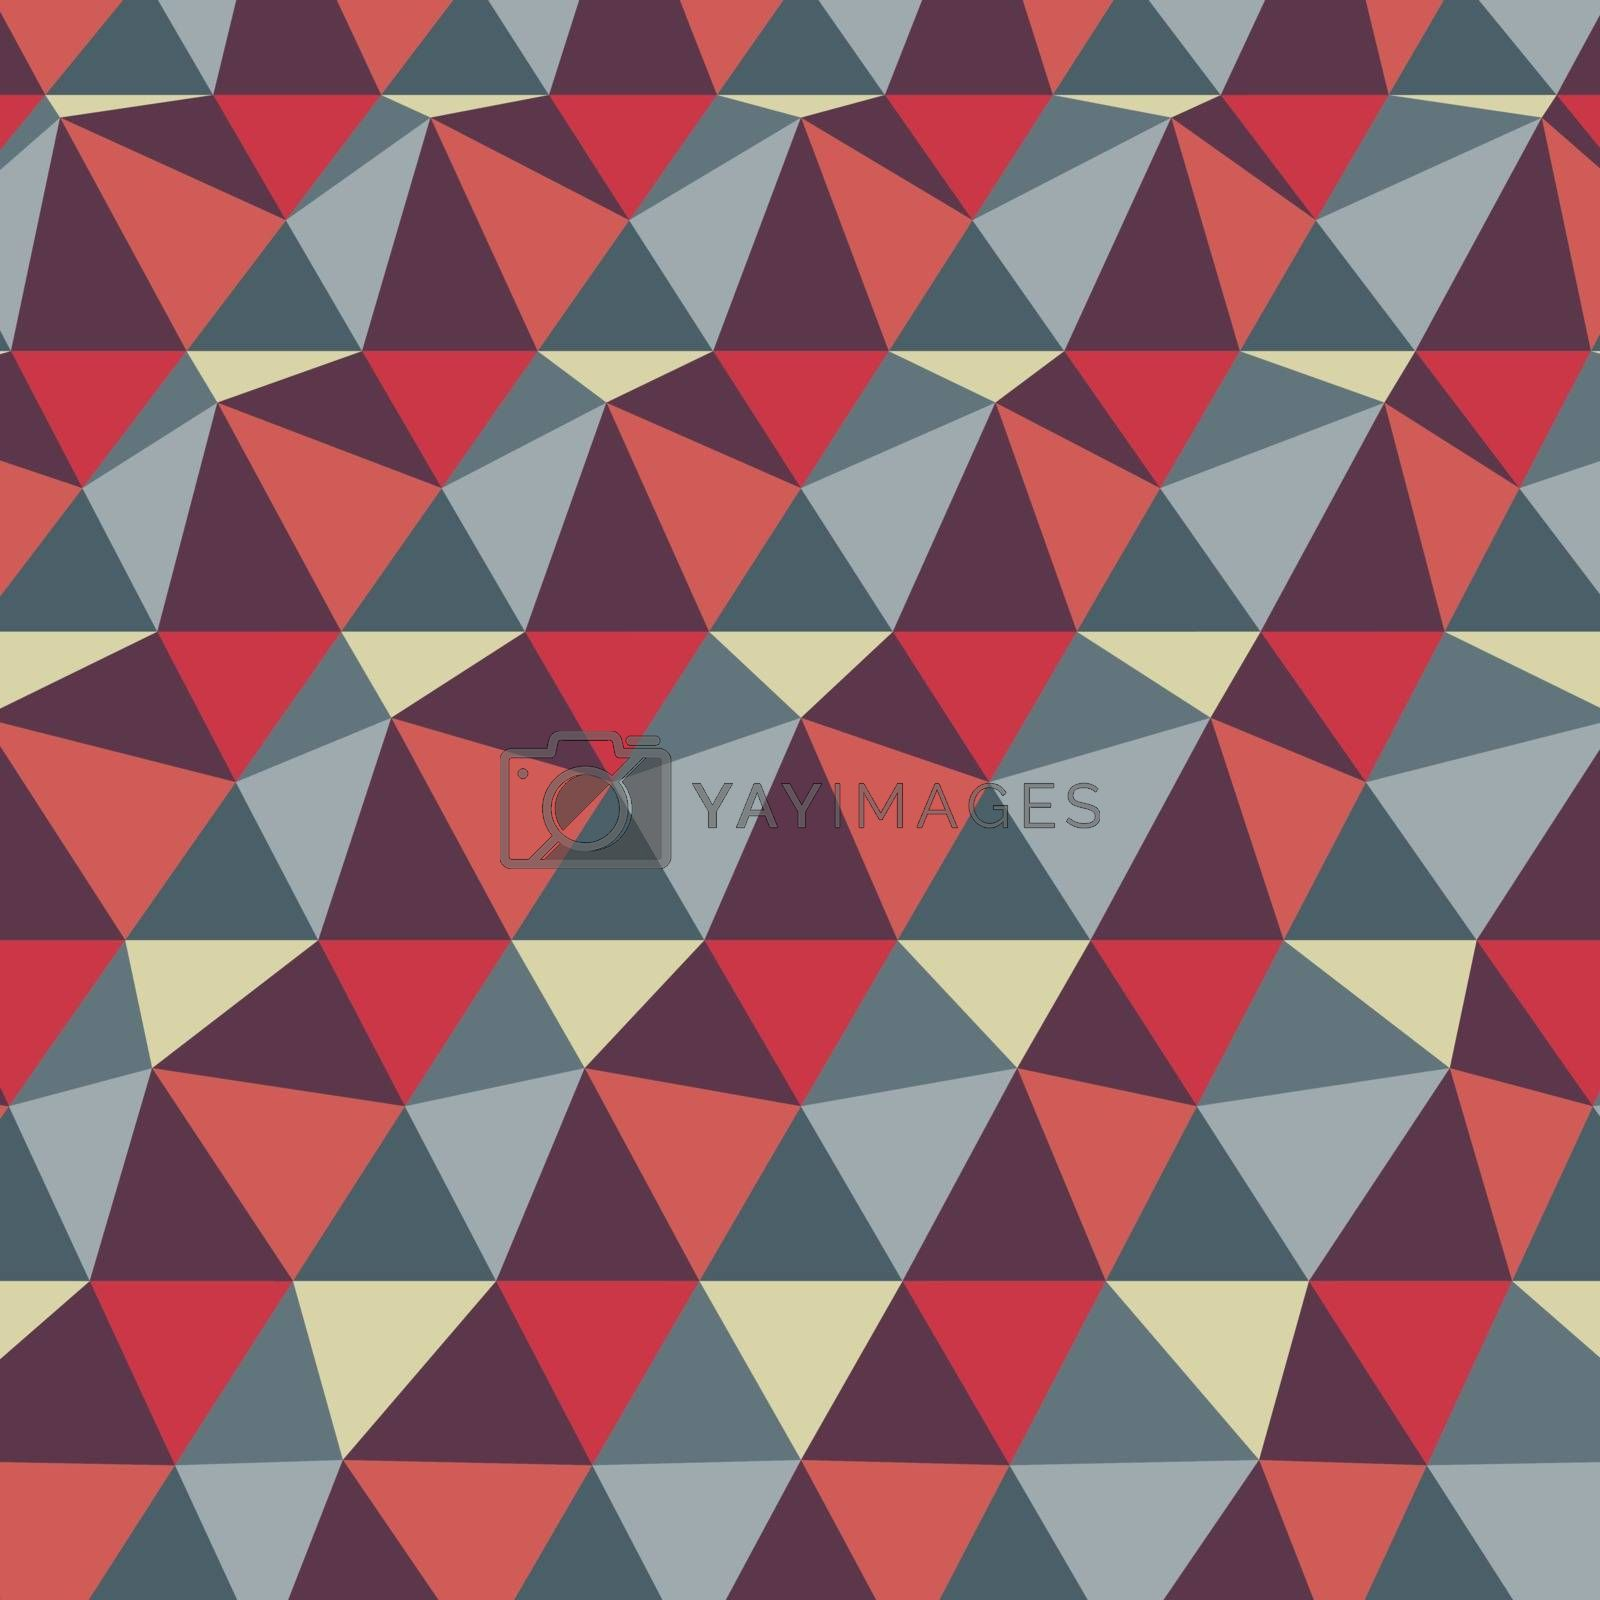 Abstract geometric background. Mosaic. Vector illustration. Can be used for wallpaper, web page background, book cover.